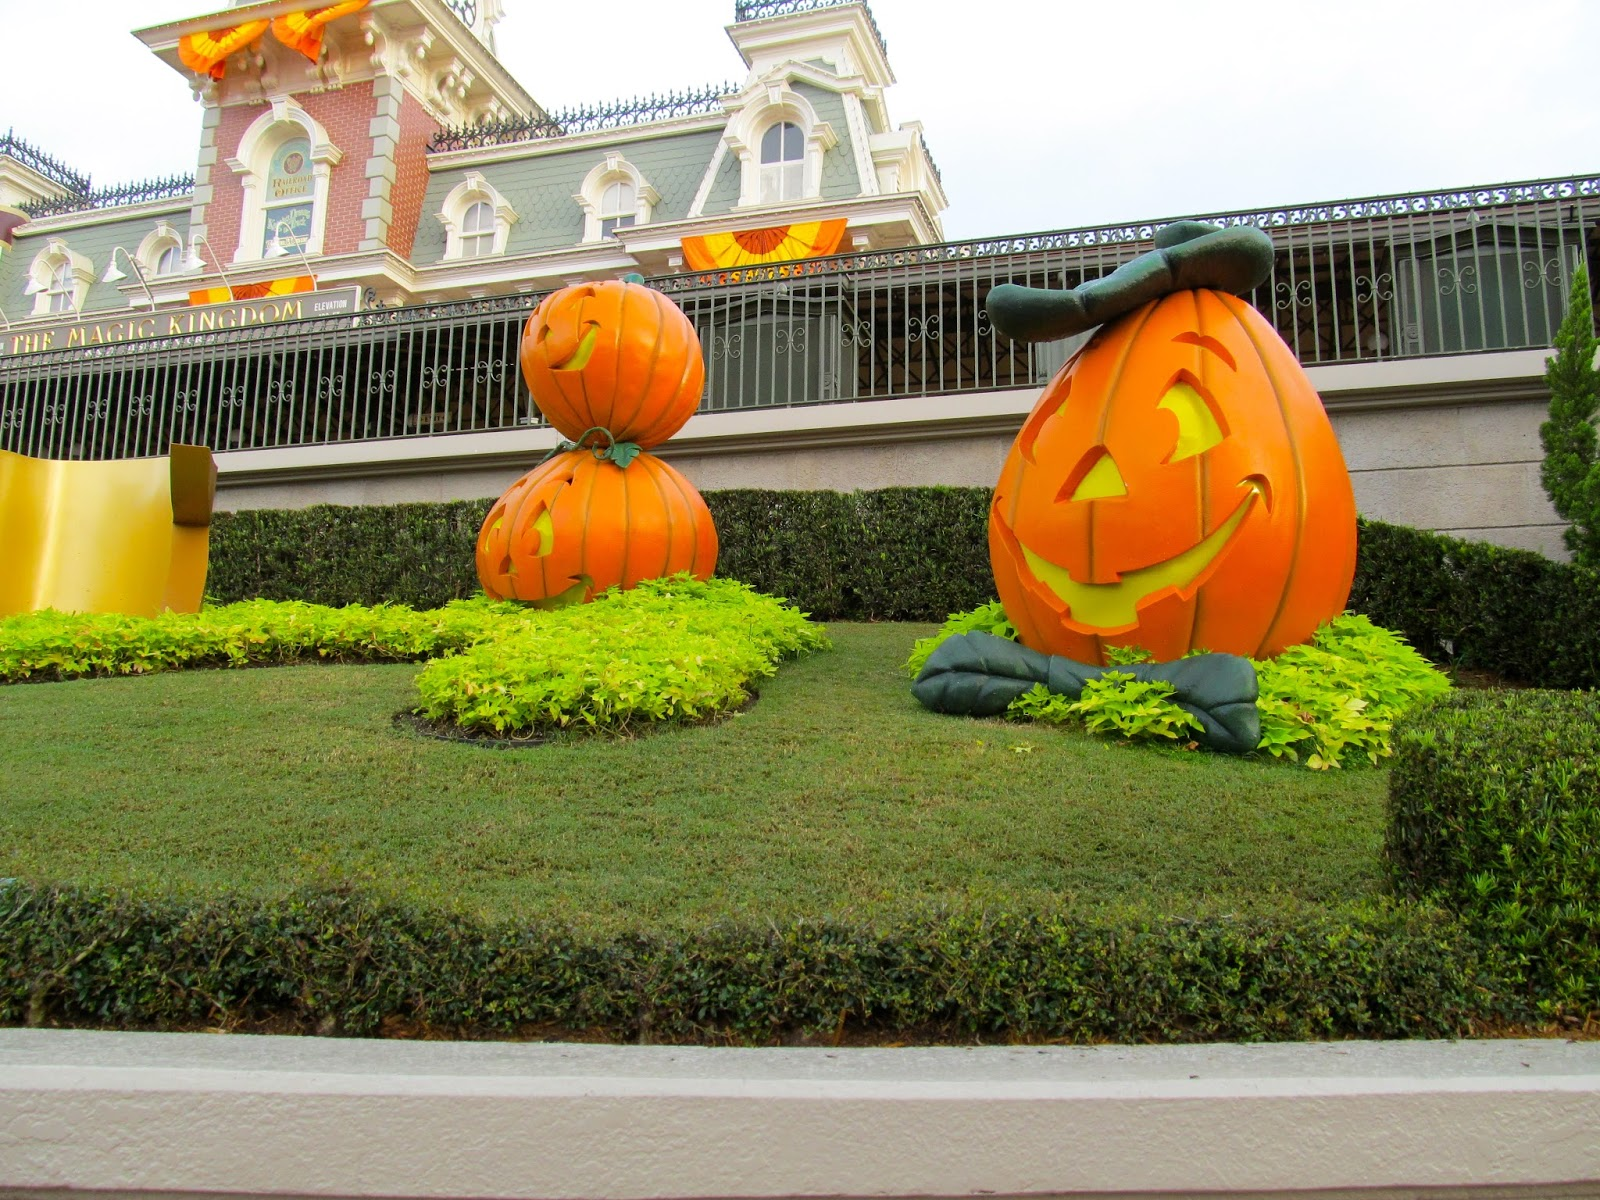 The Fall at the Magic Kingdom, Walt Disney World - FL - www.ouroutdoortravels.blogspot.com